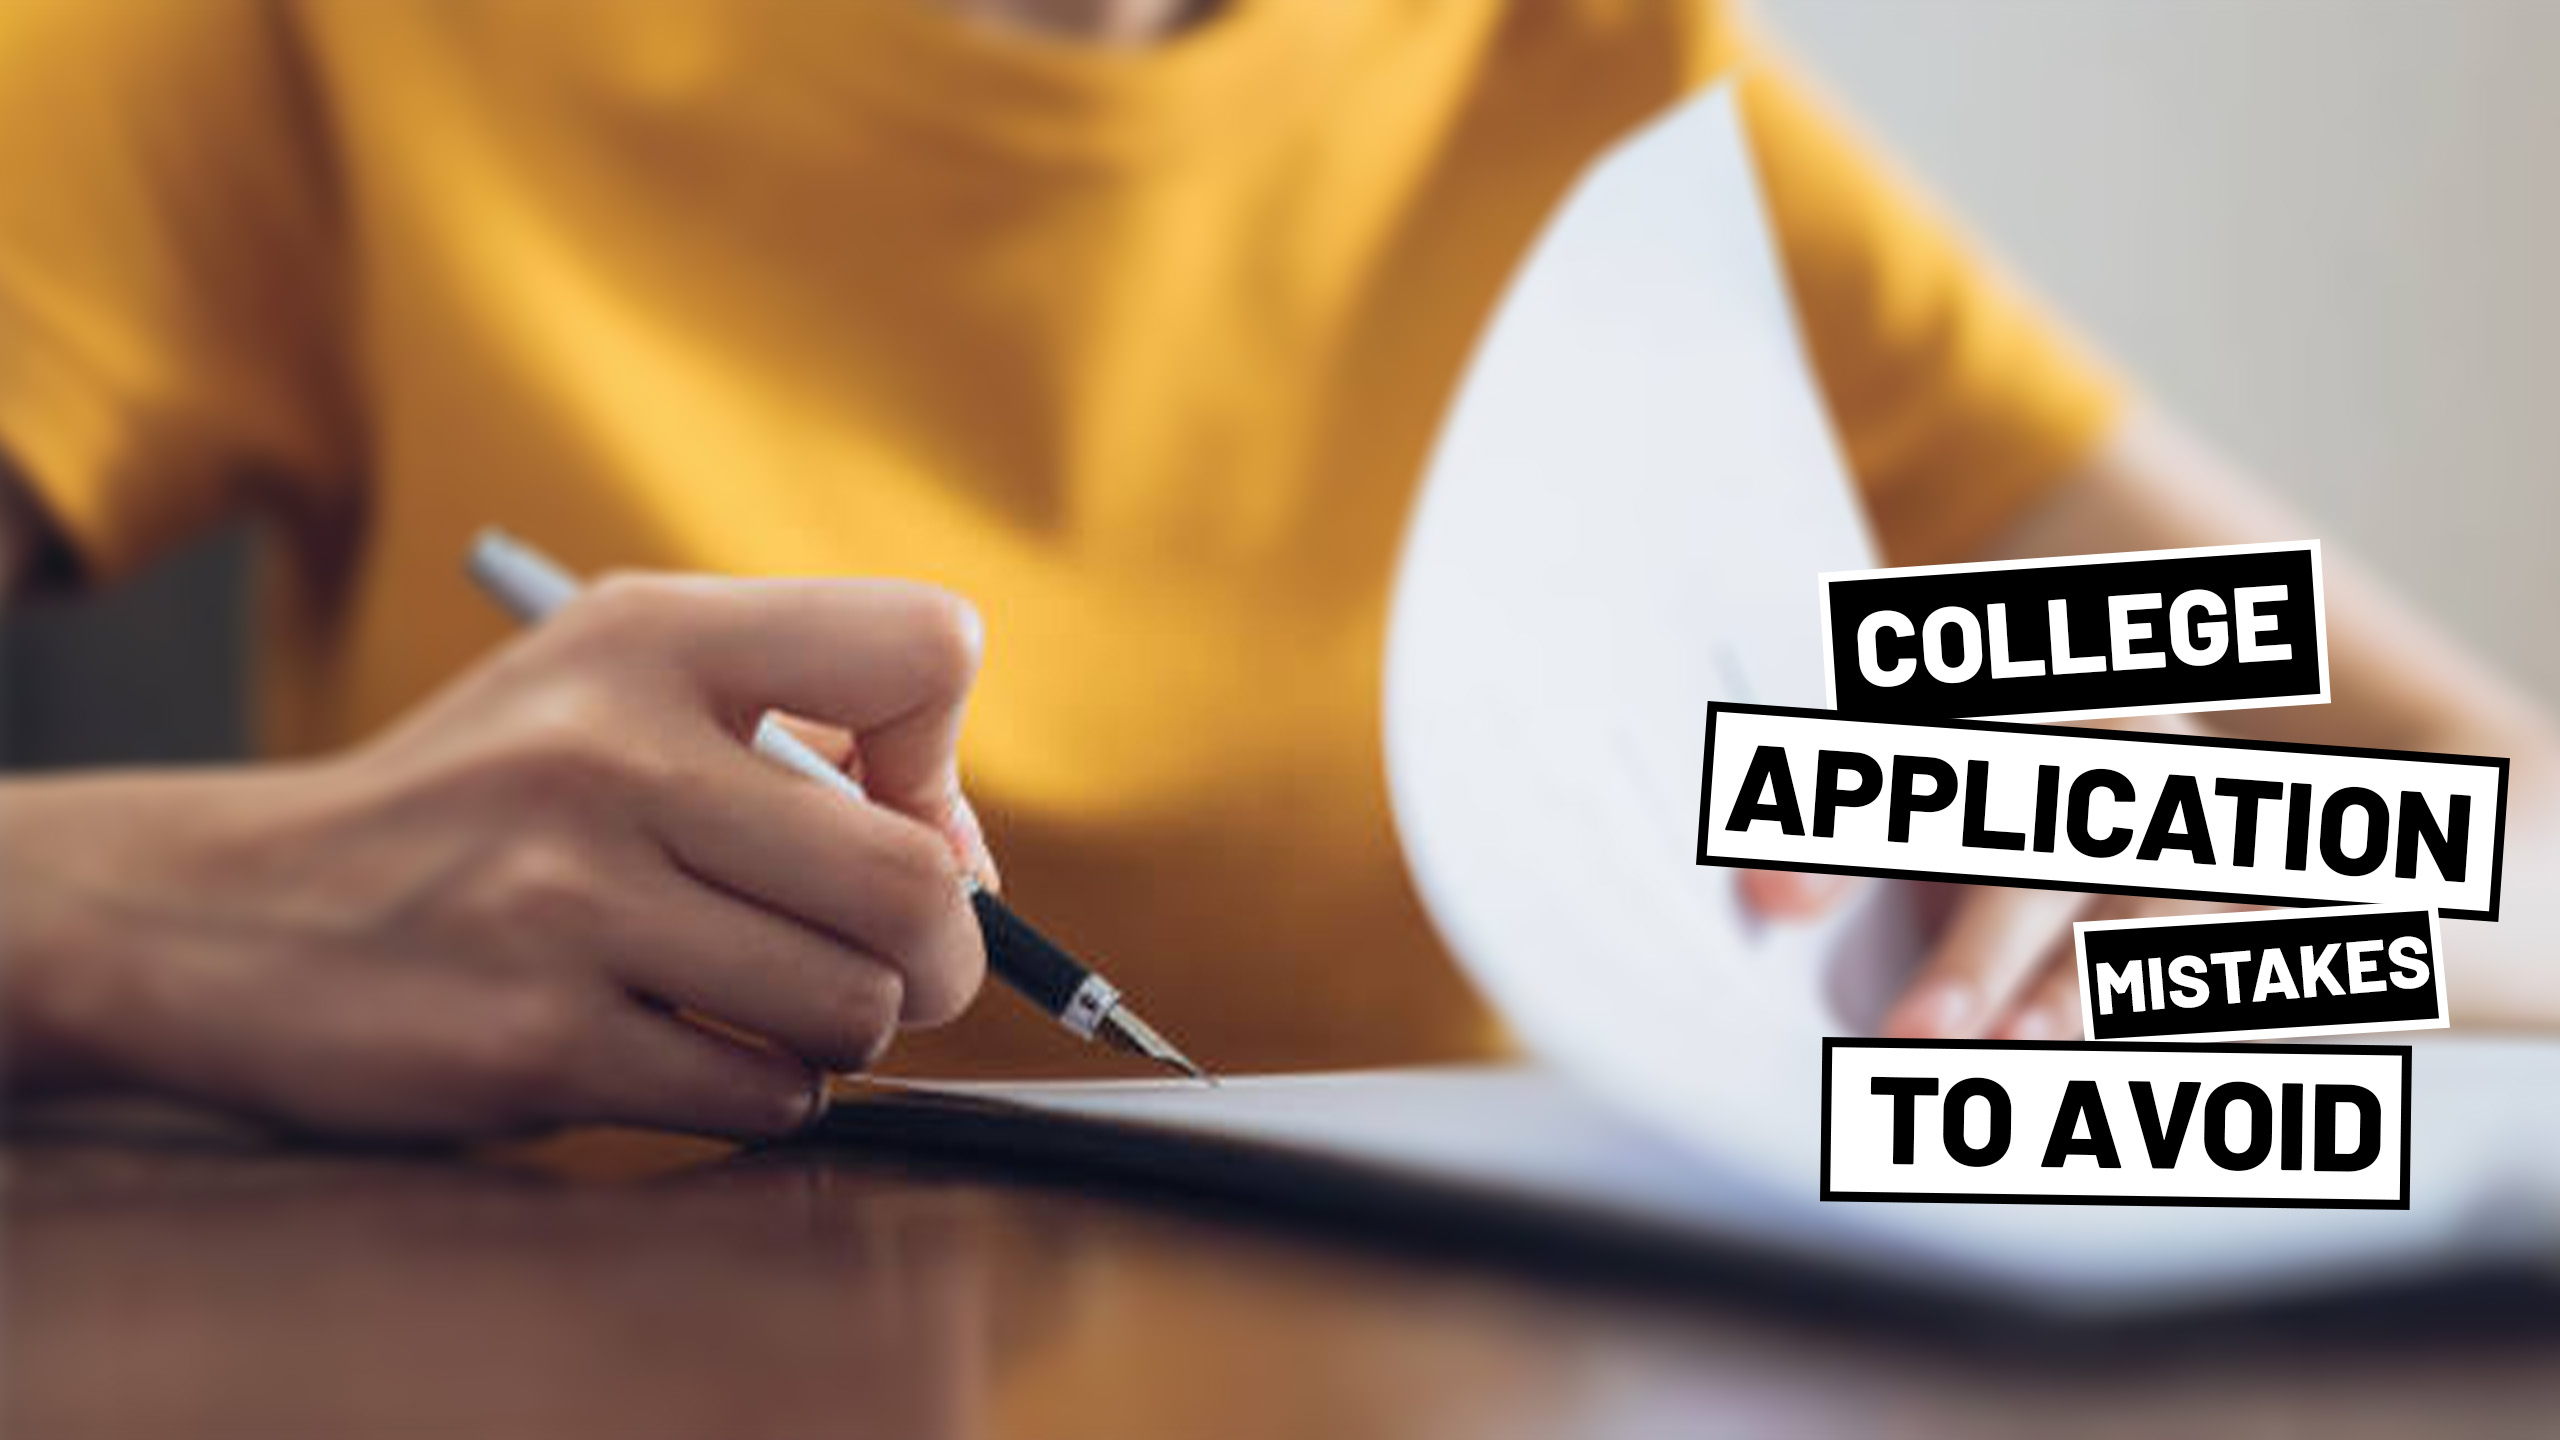 COLLEGE APPLICATION MISTAKES TO AVOID